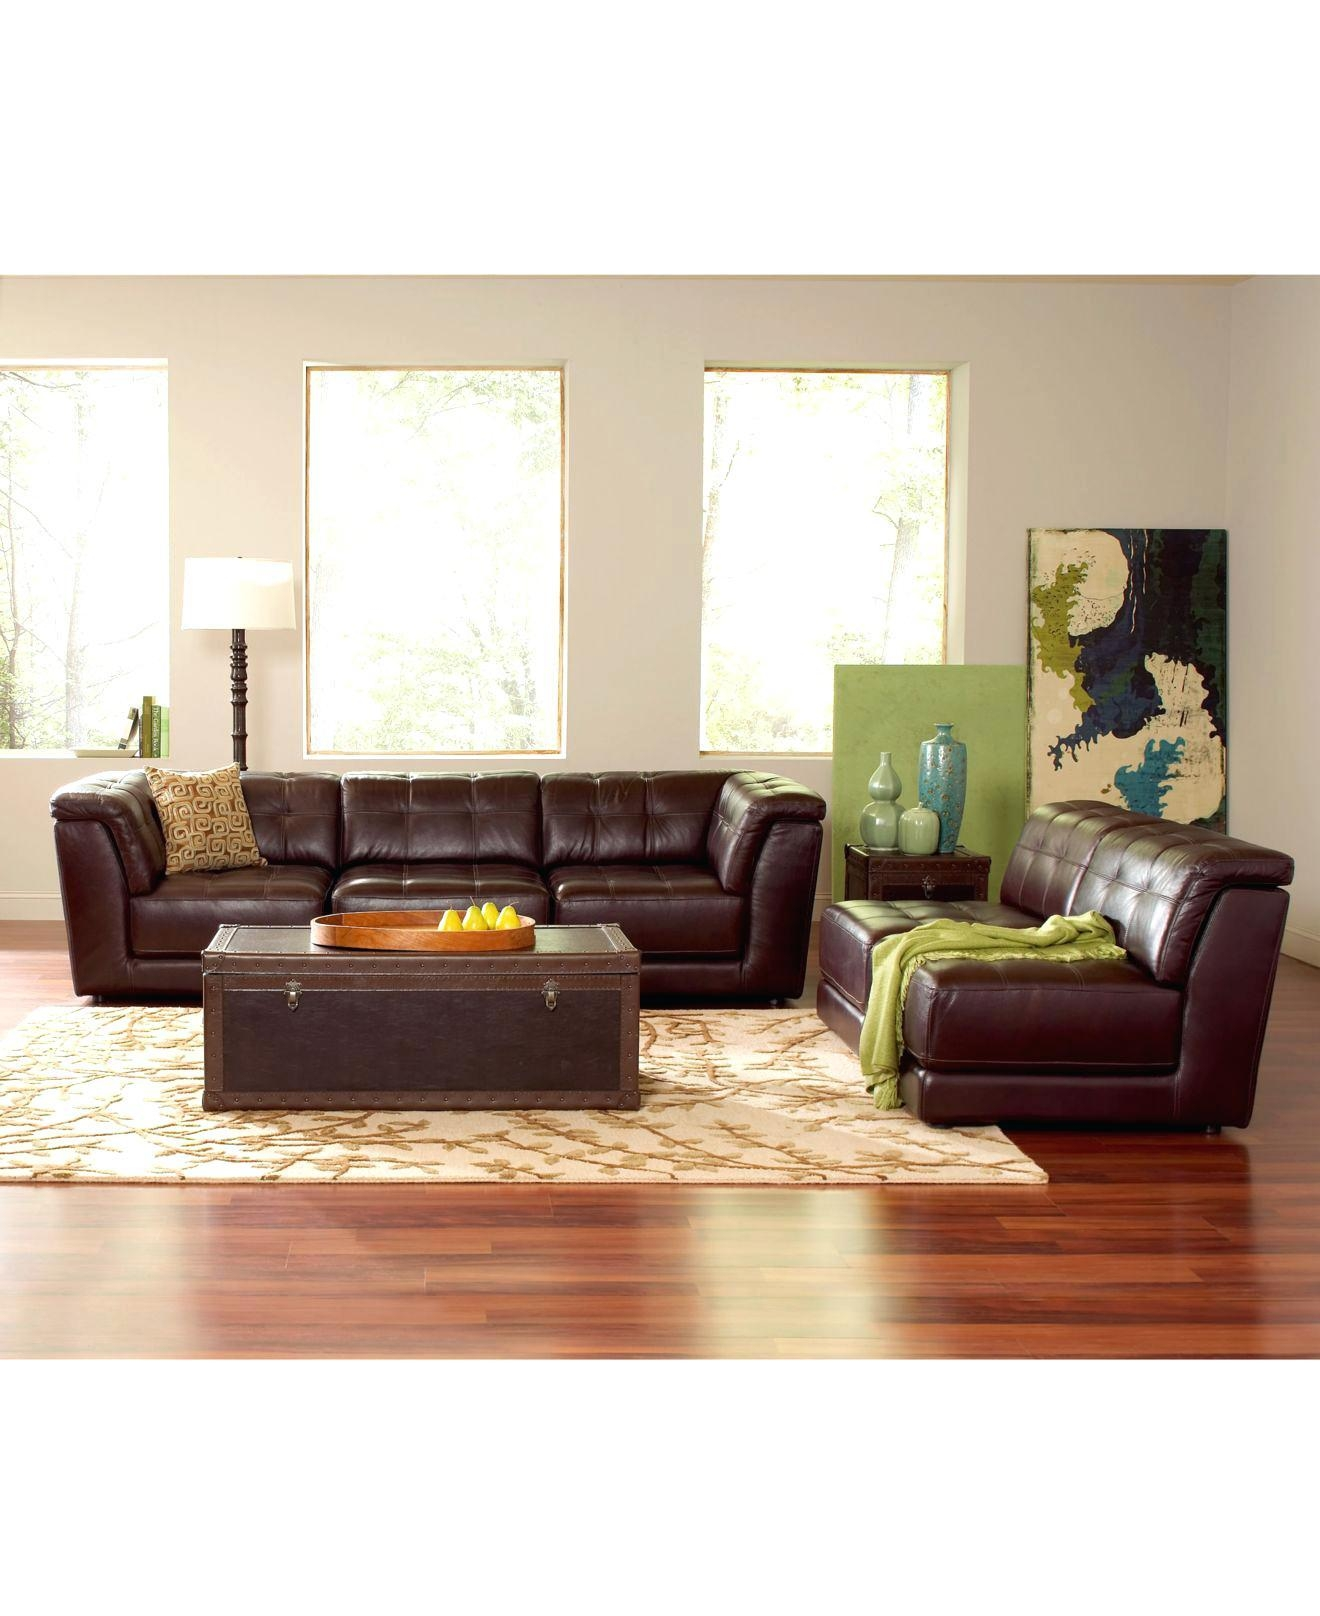 Ashley Sectional Leather Hercules Imagination Black 7 Piece In Stacey Leather Sectional (View 2 of 20)